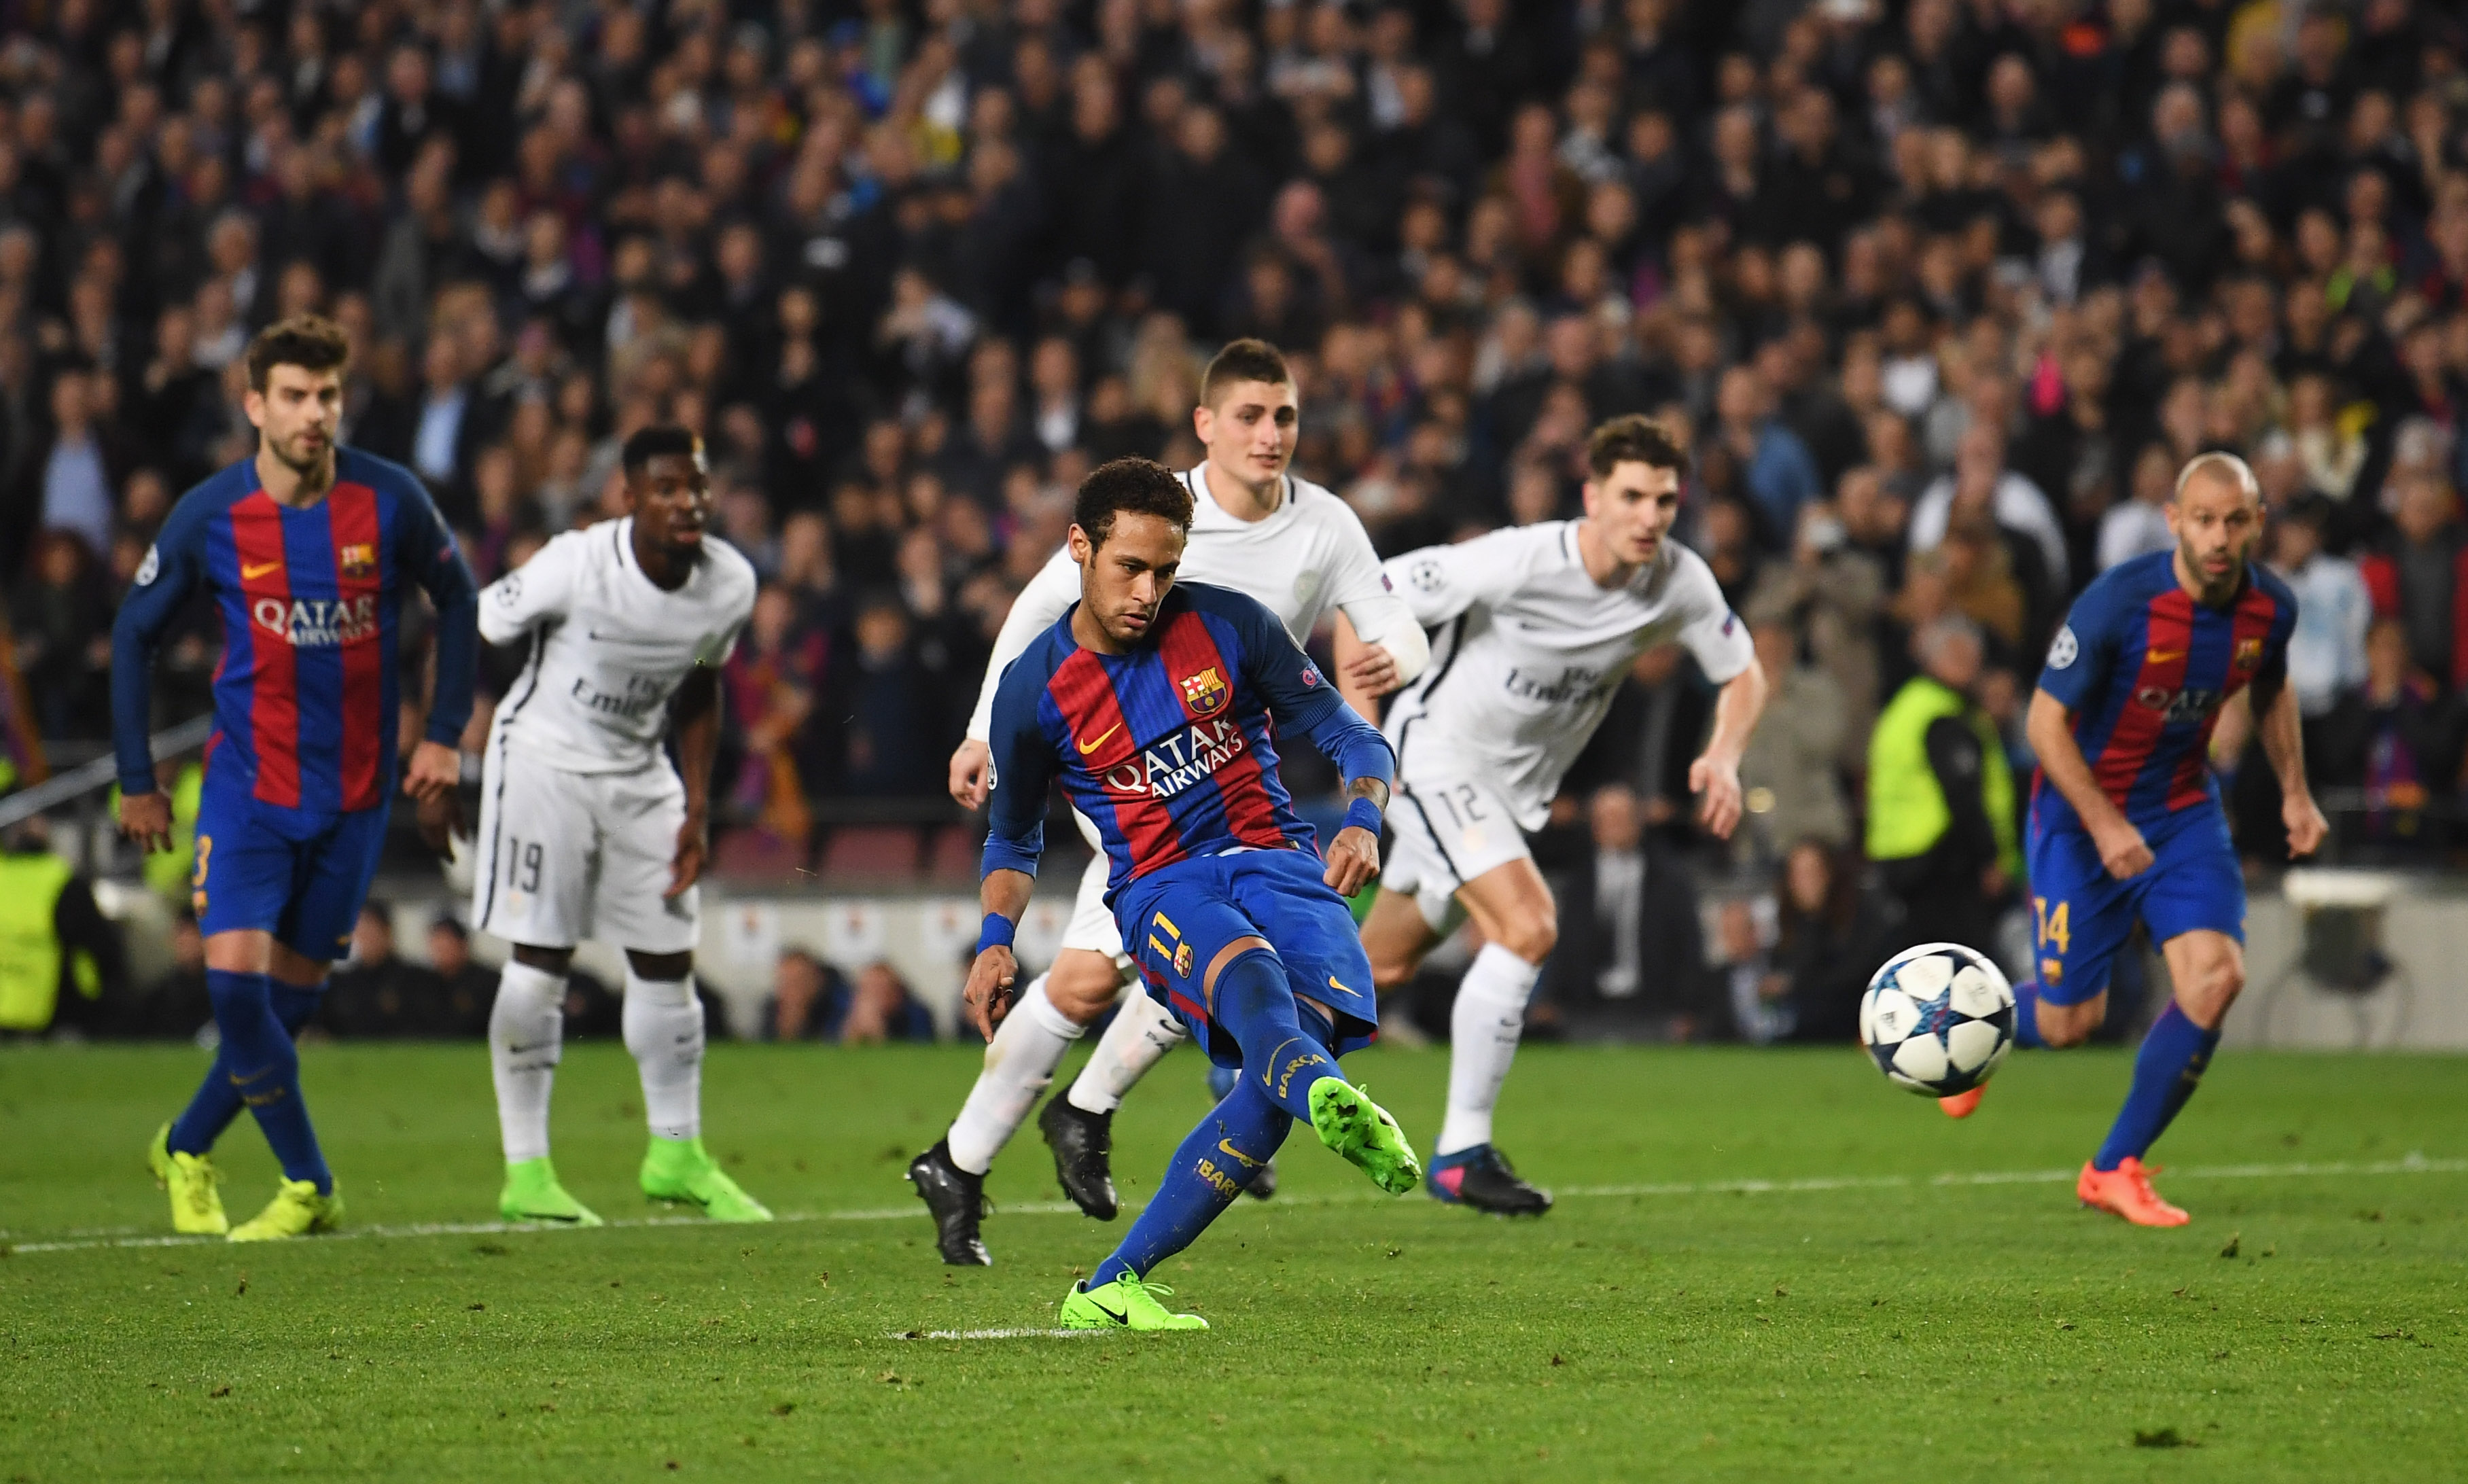 Top target: Neymar scoring against Paris Saint-Germain (Getty).